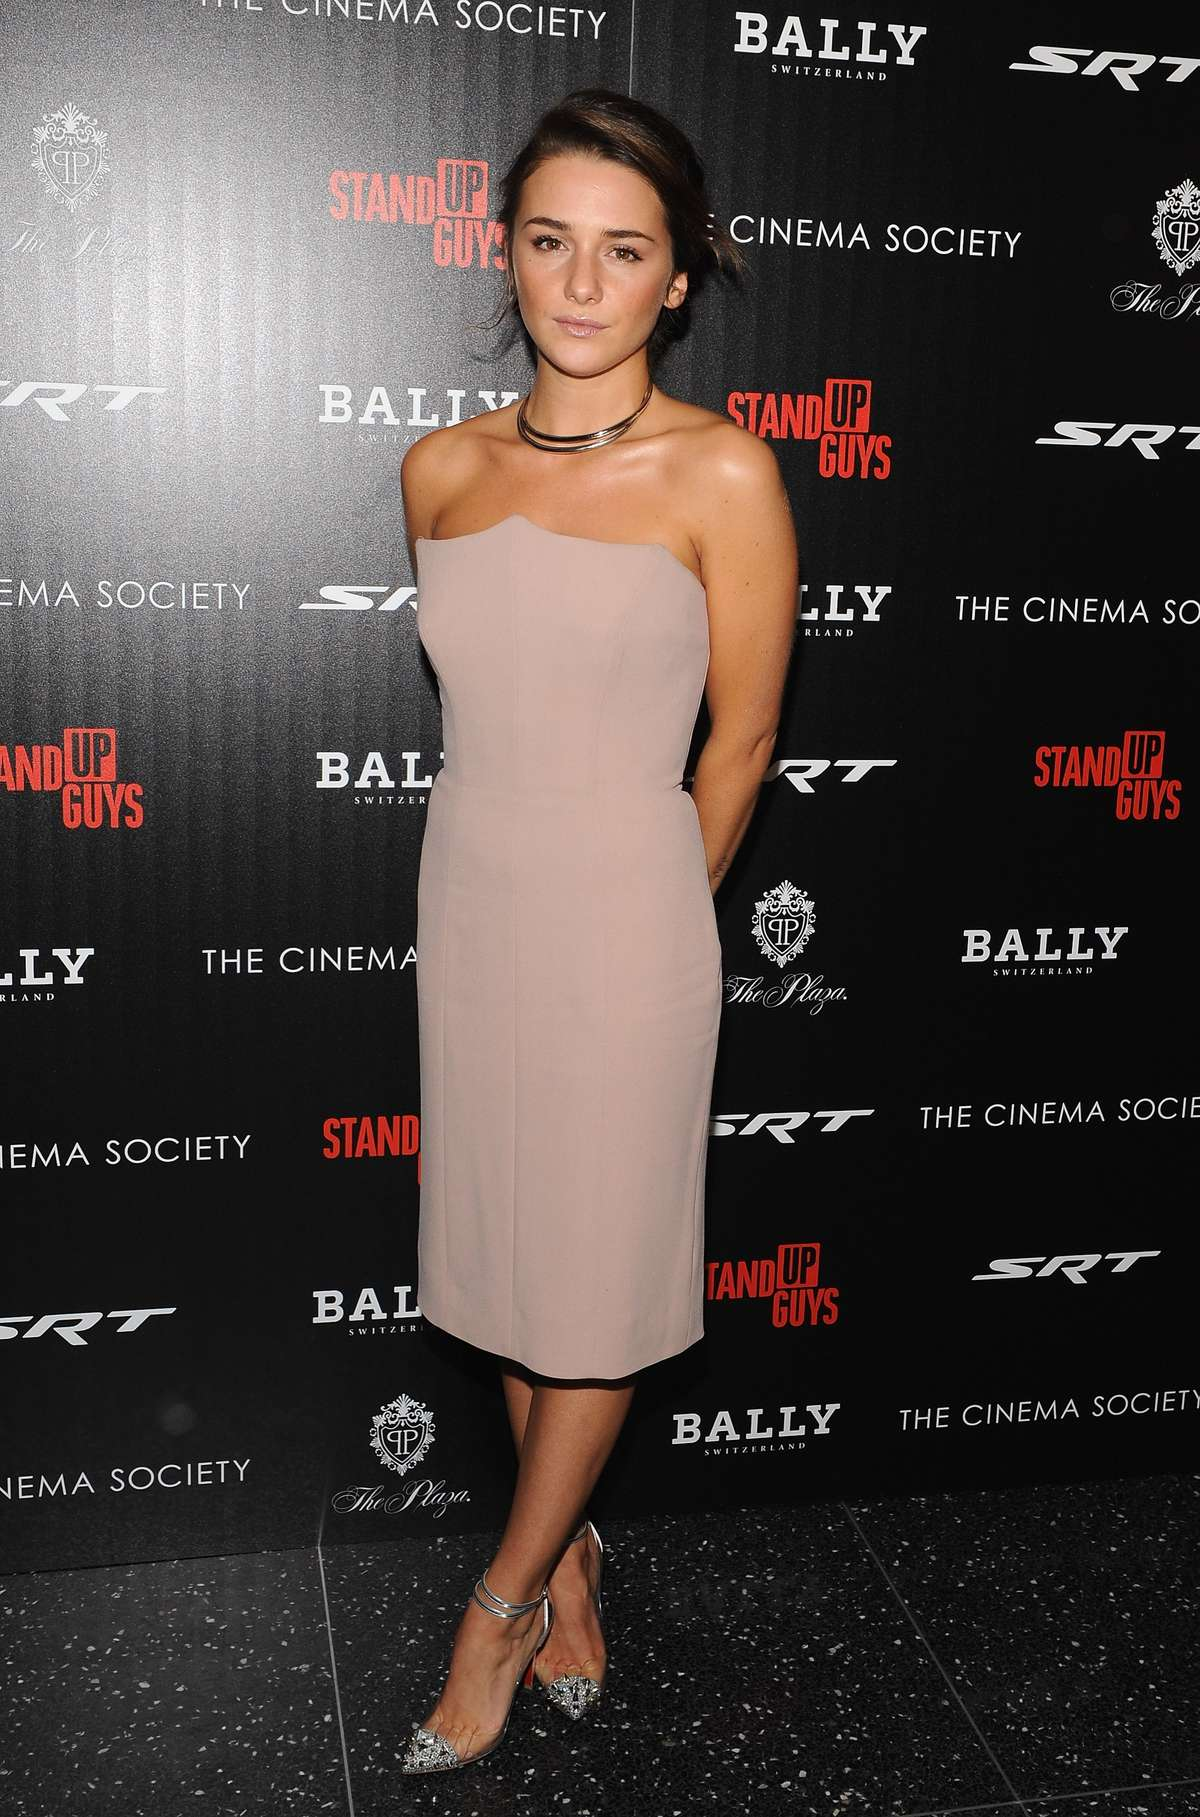 Addison Timlin - Stand Up Guys Premiere -02 - GotCeleb